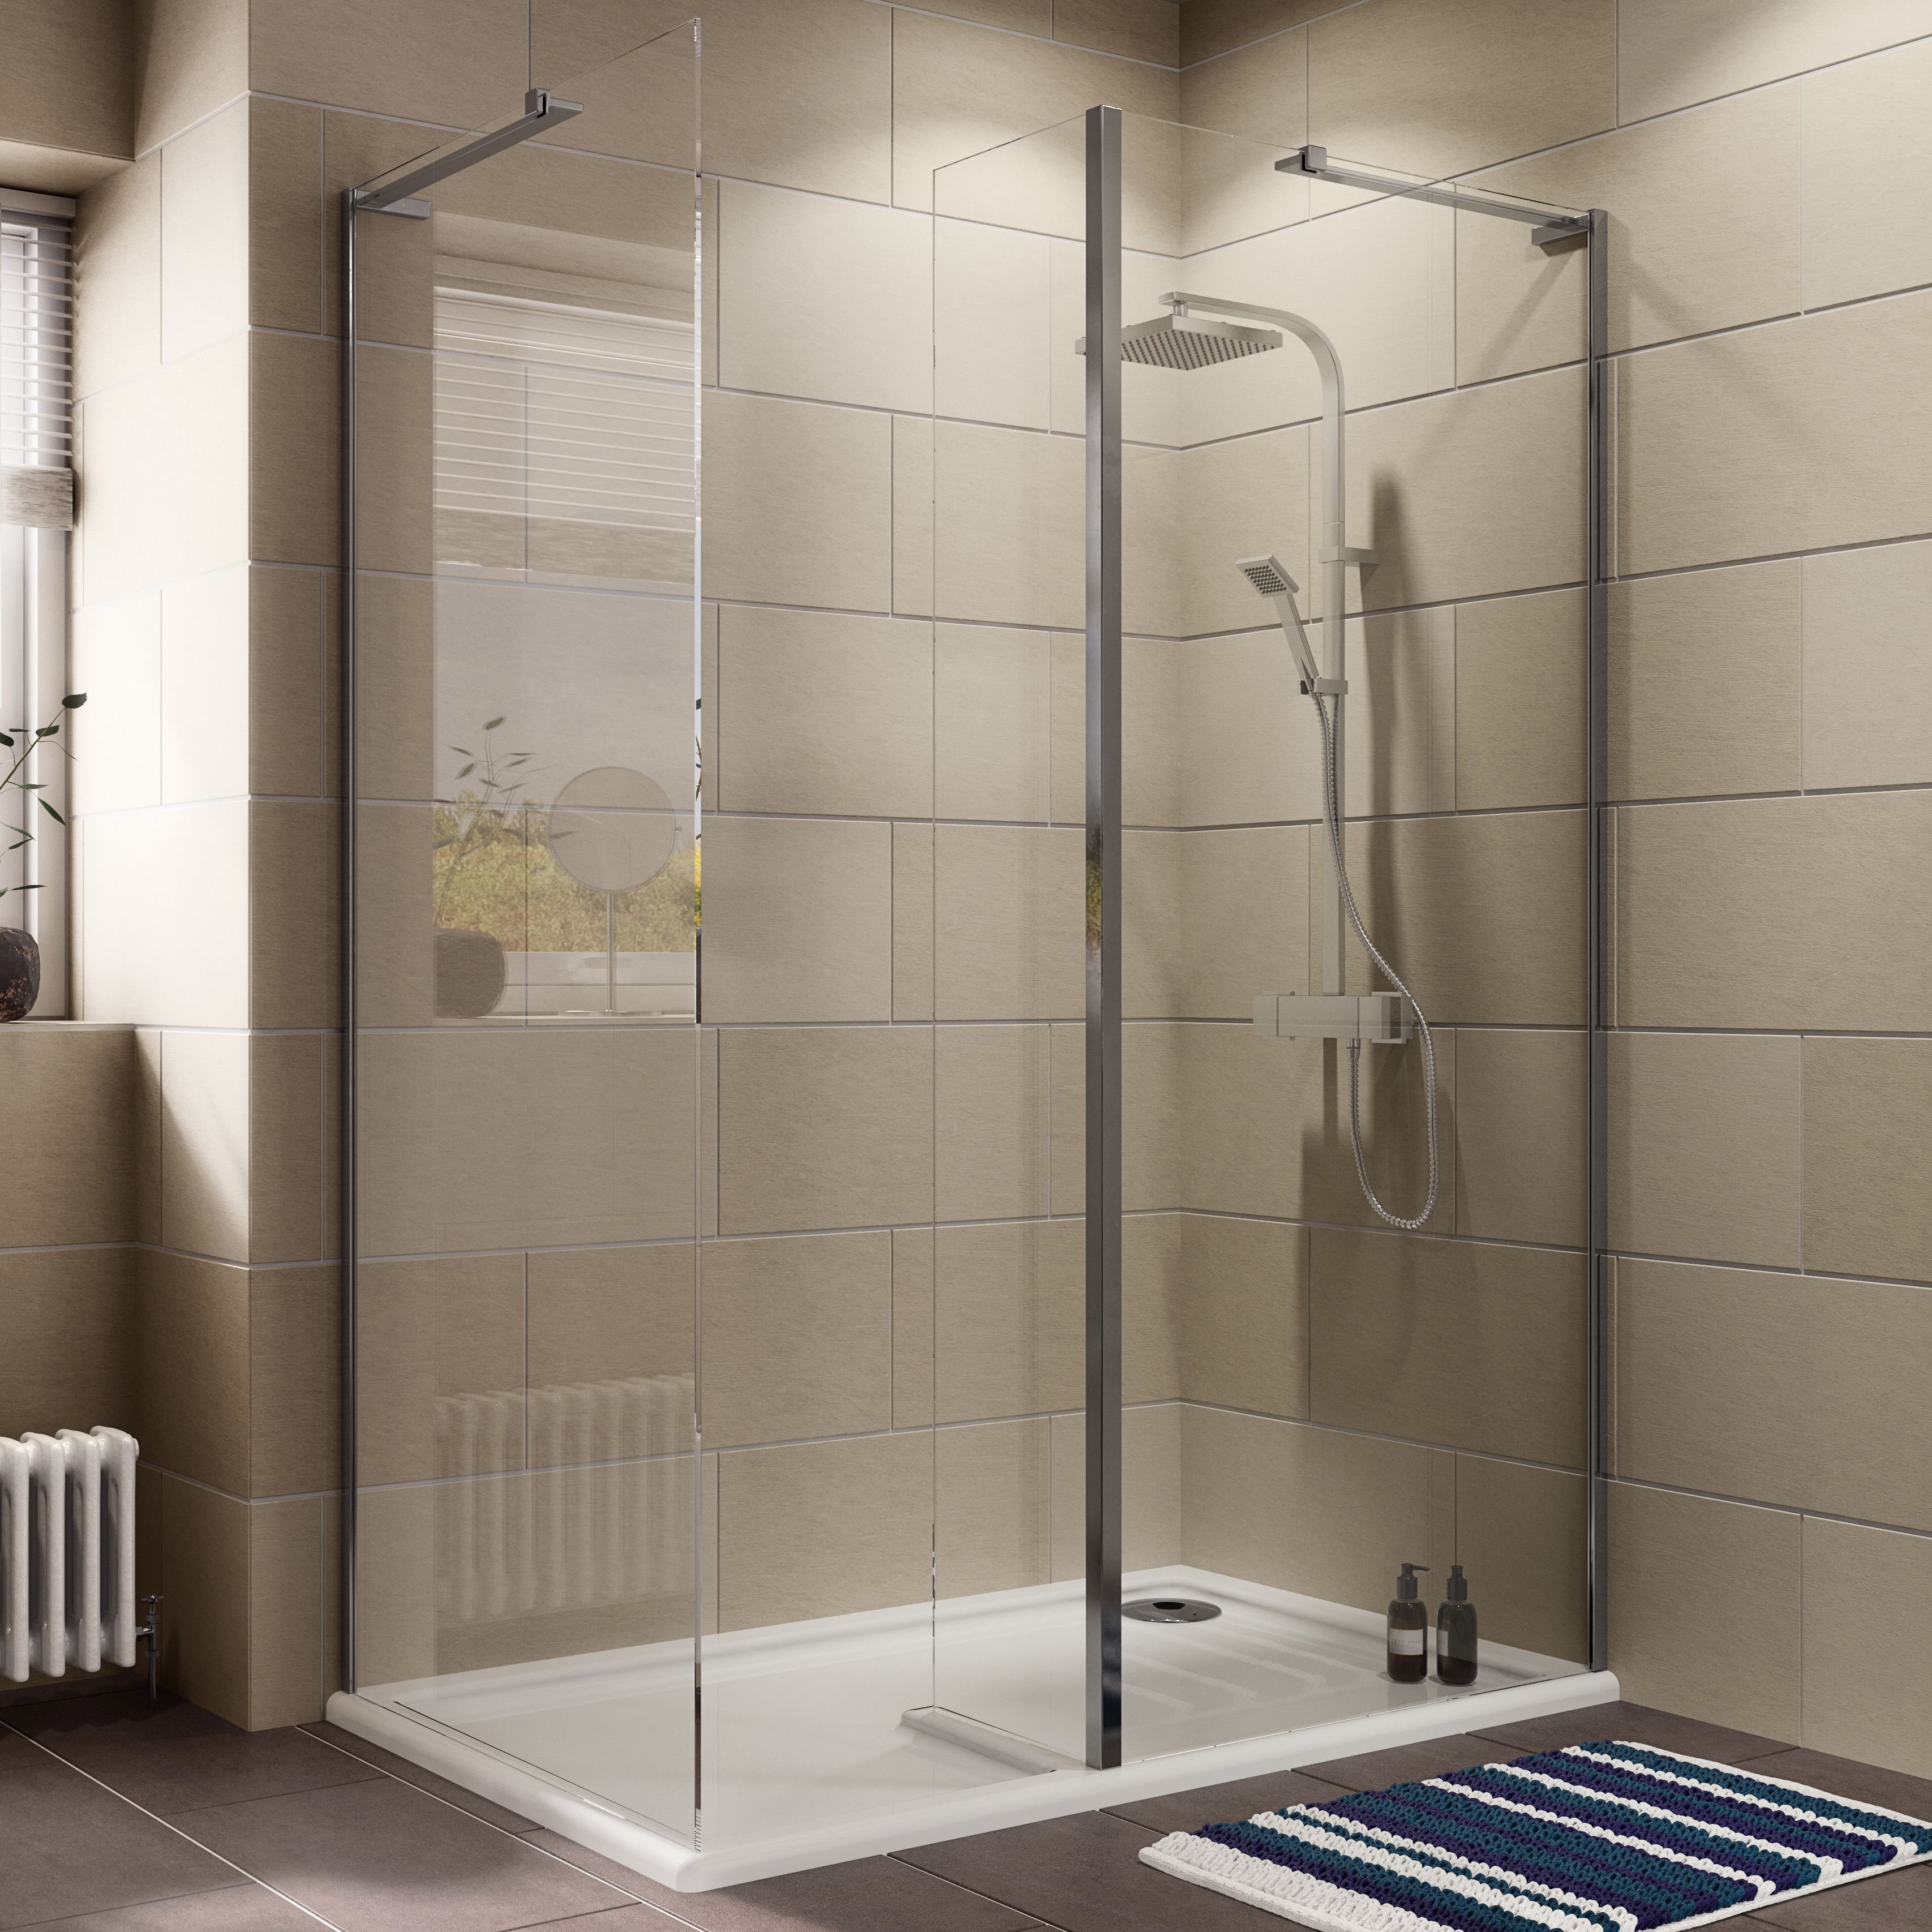 Cooke & Lewis Luxuriant Rectangular Rh Shower Enclosure, Tray & Waste Pack With Walk-in Entry (w)1400mm (d)880mm